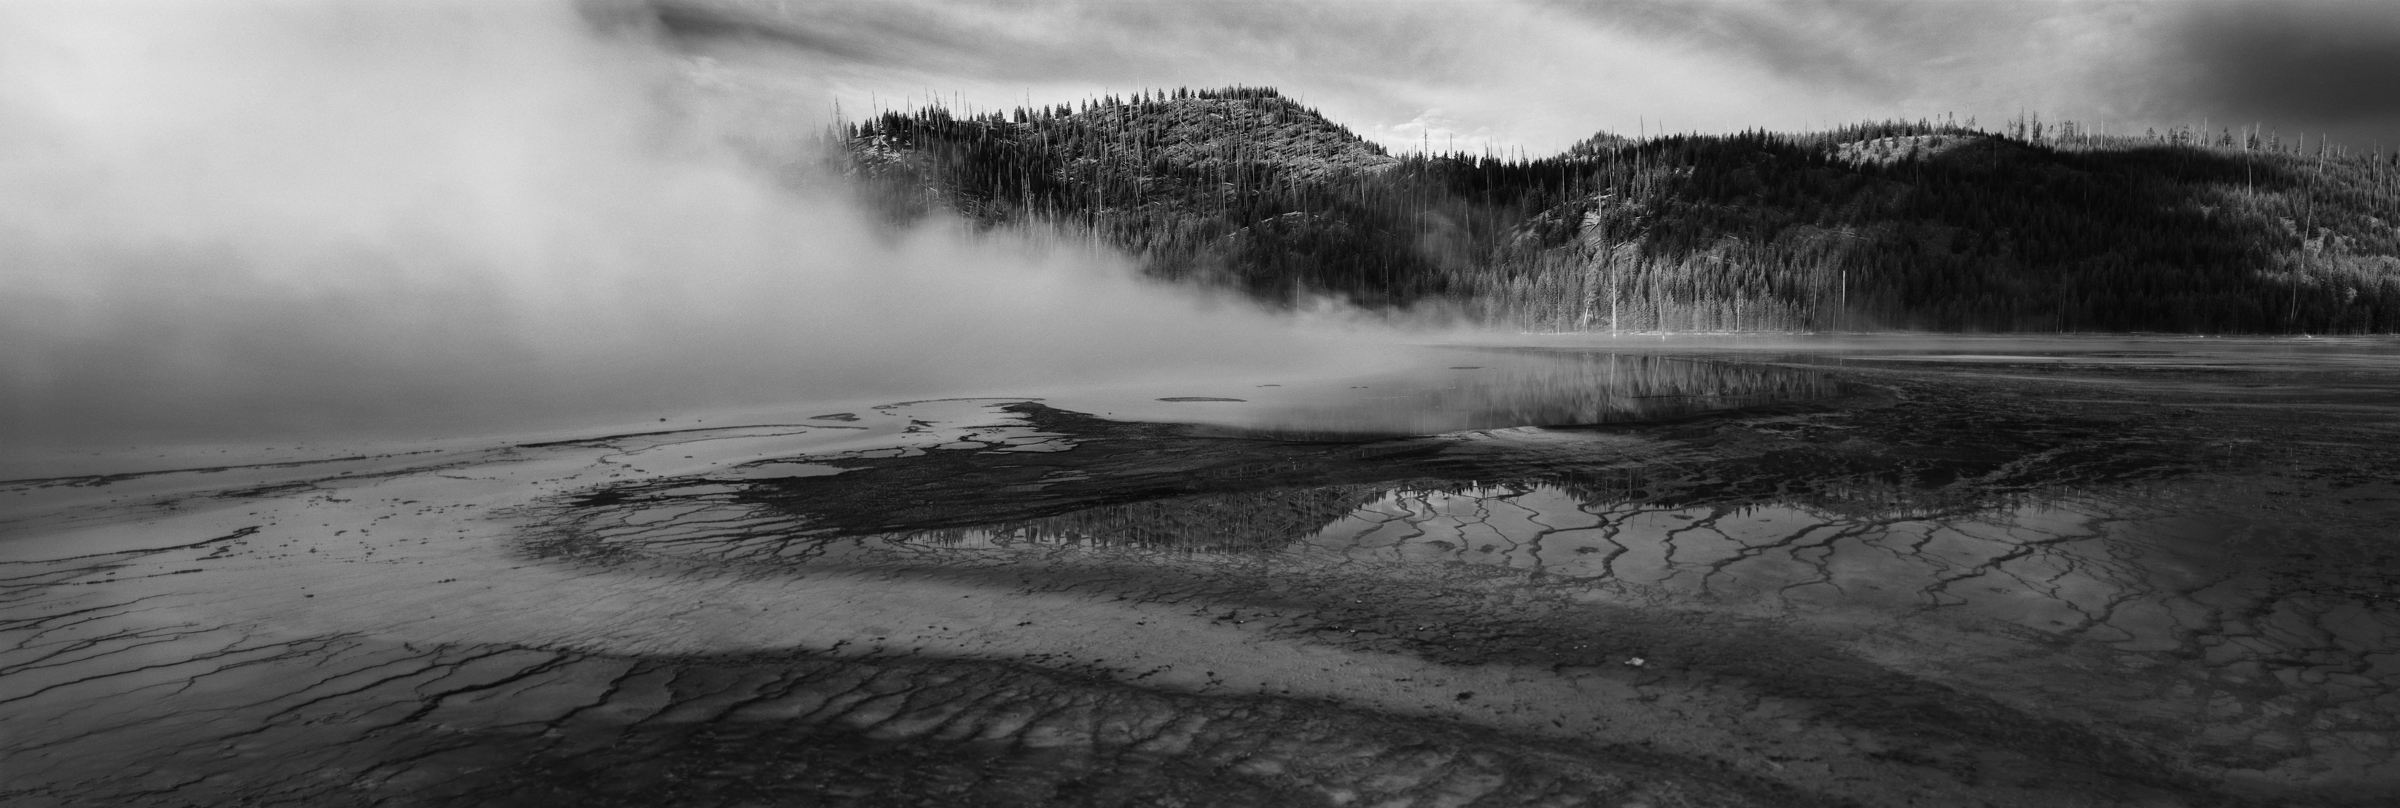 Yellowstone National Park- Prismatic Pool, Wyoming